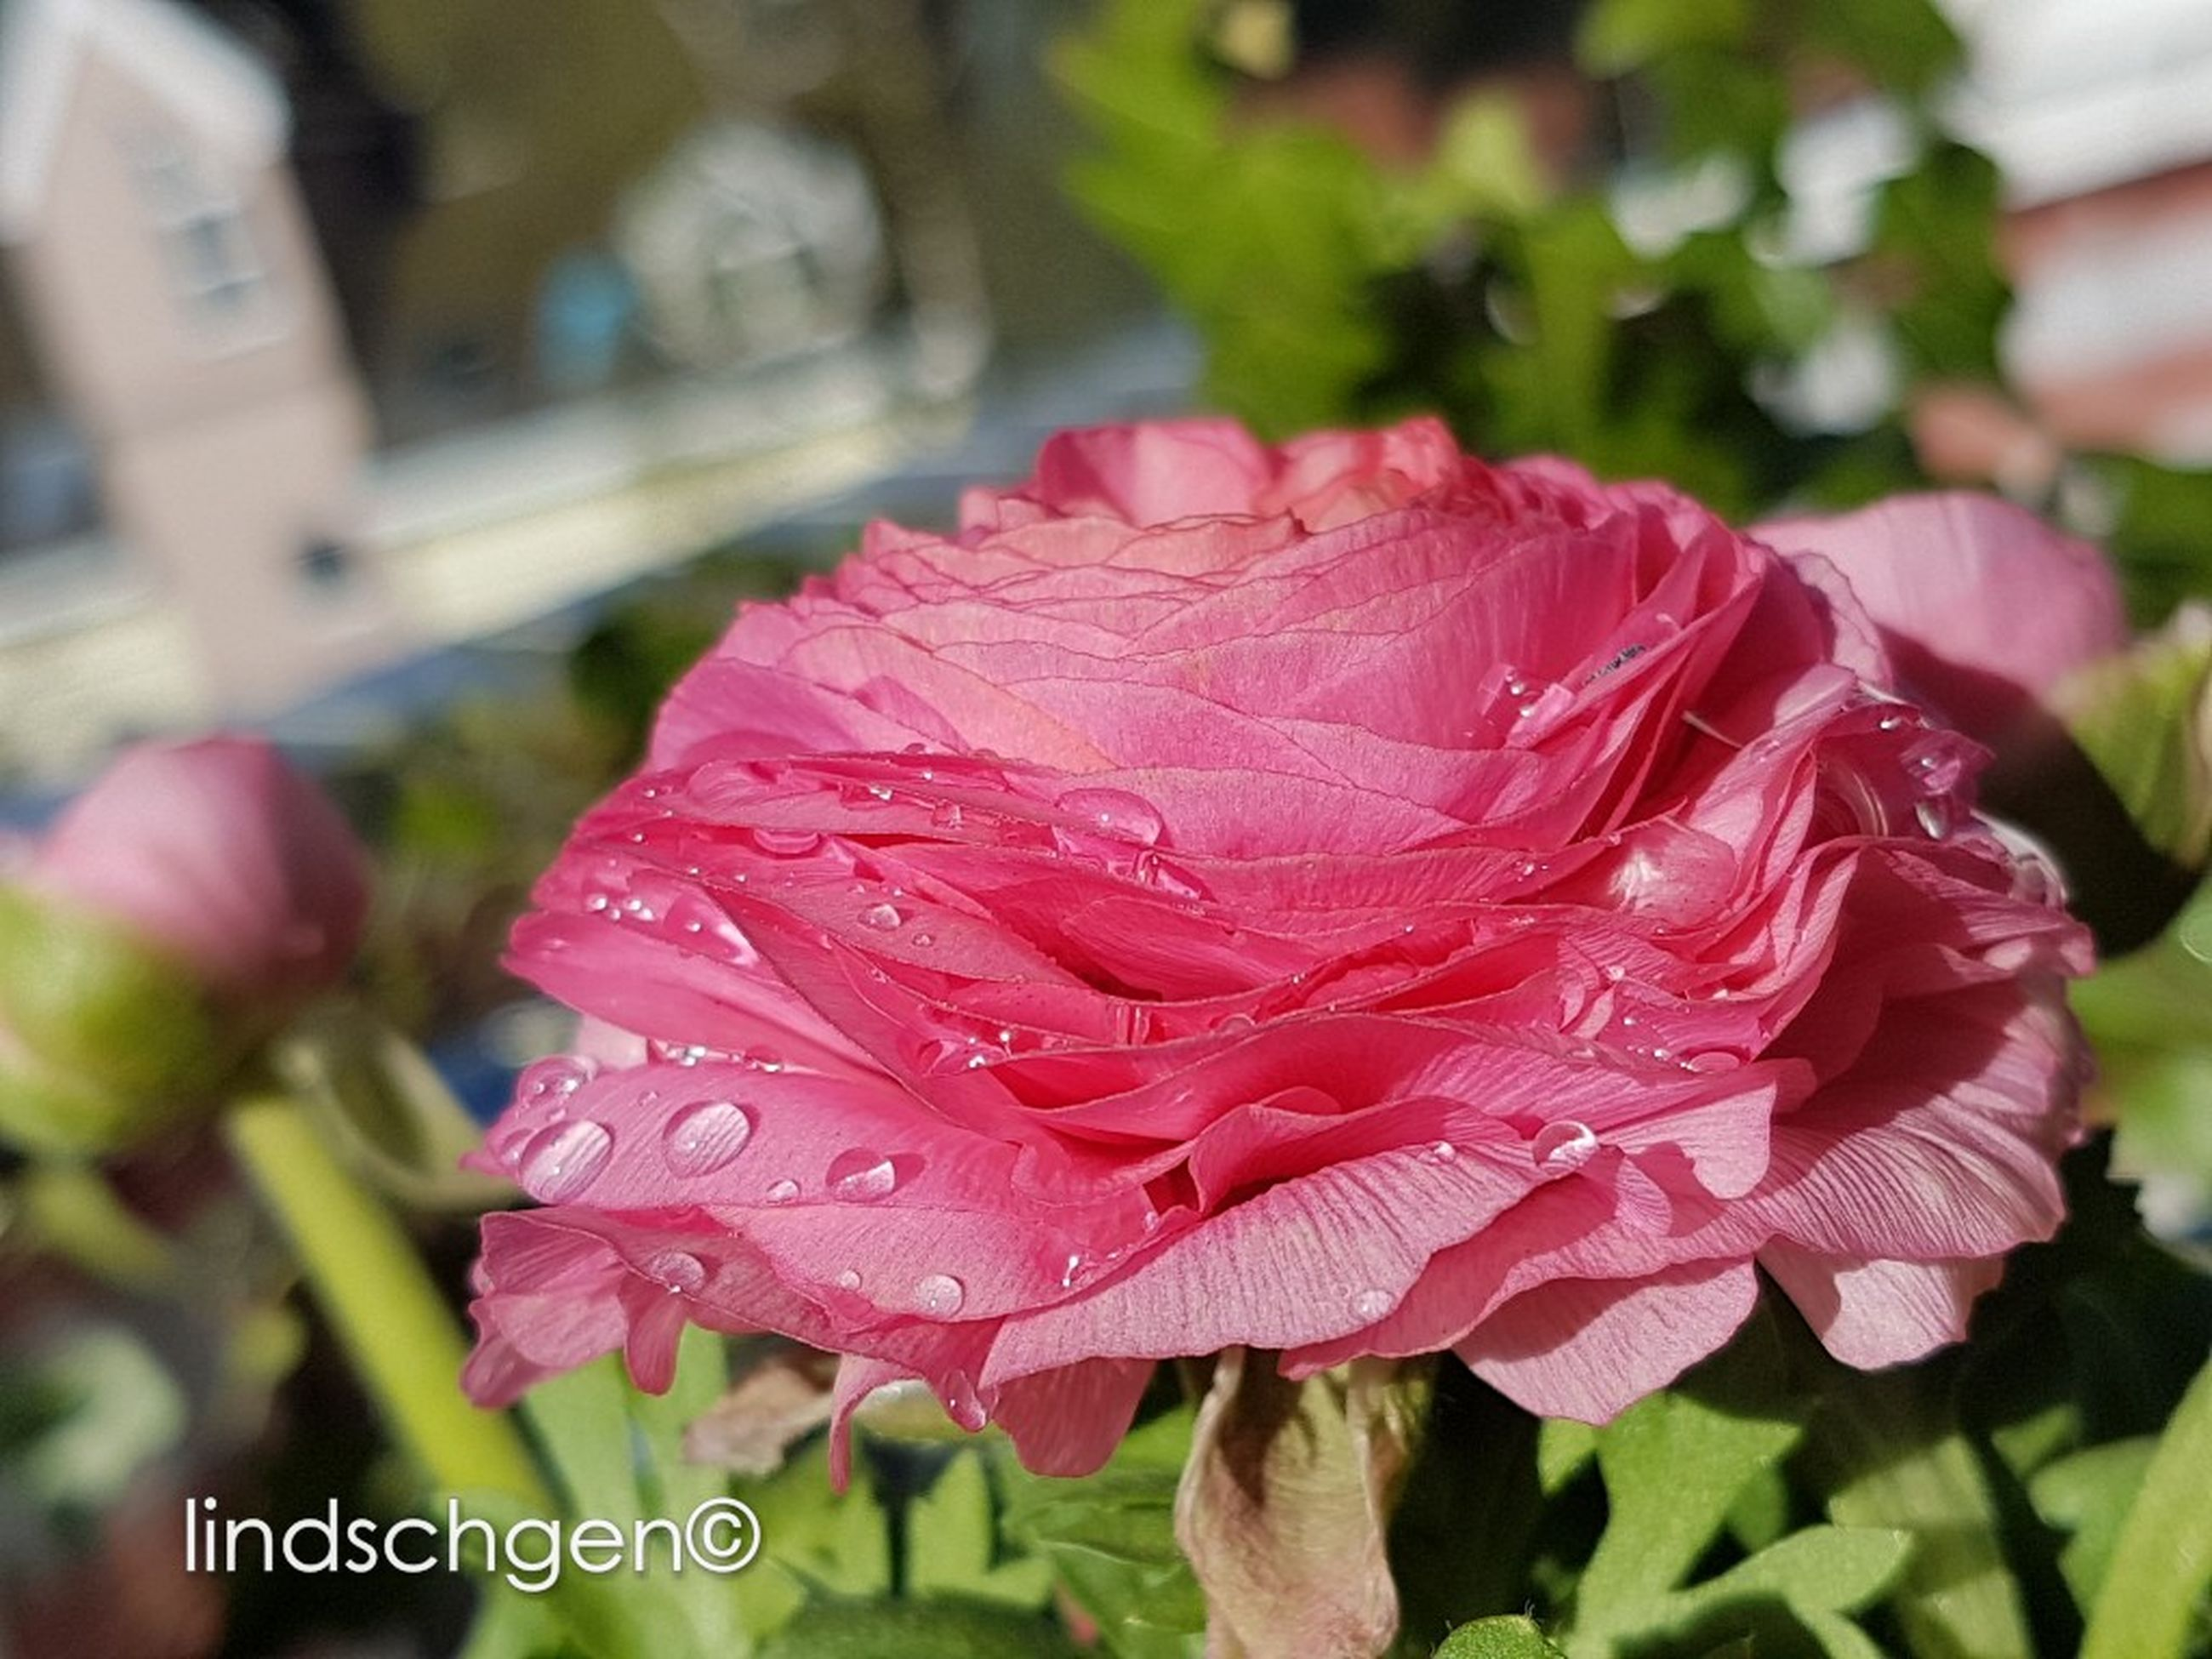 petal, flower, fragility, flower head, nature, growth, beauty in nature, freshness, day, leaf, pink color, close-up, no people, plant, blooming, outdoors, water